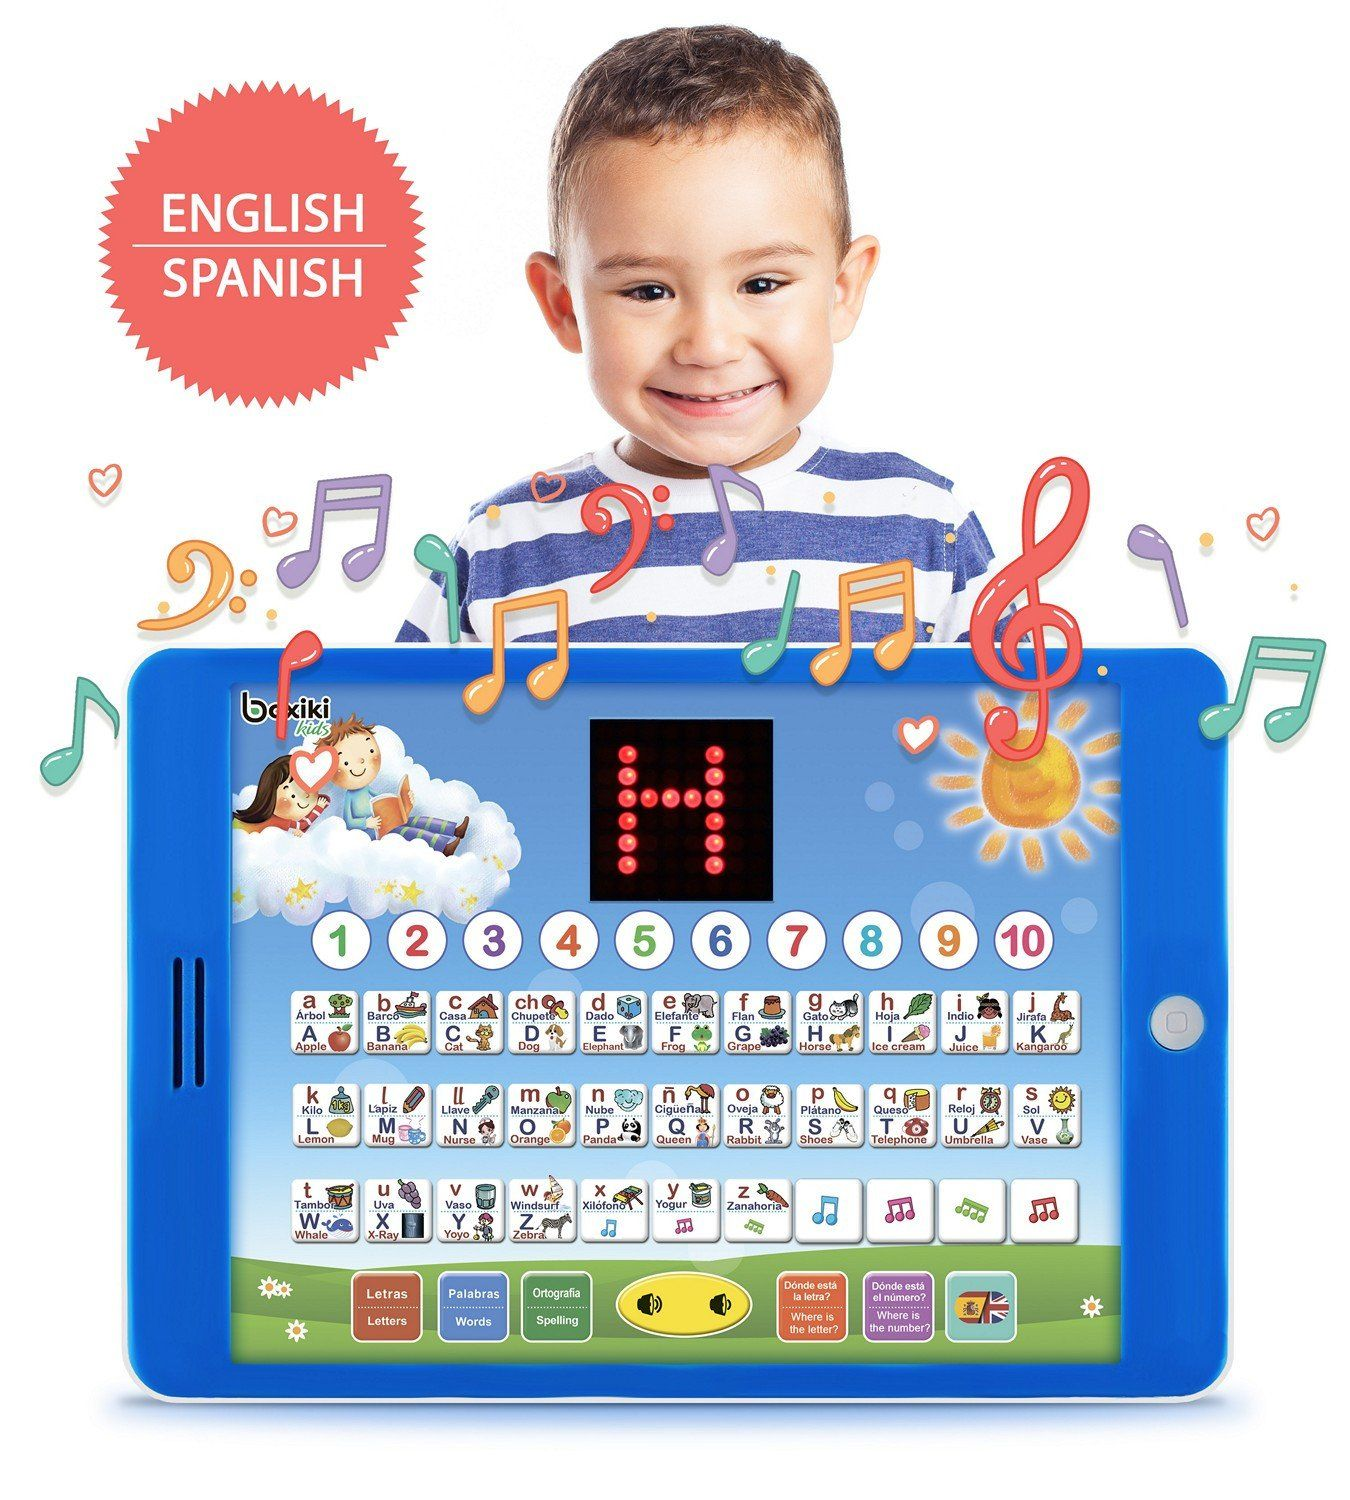 SpanishEnglish Tablet + LCD Screen Display Learning